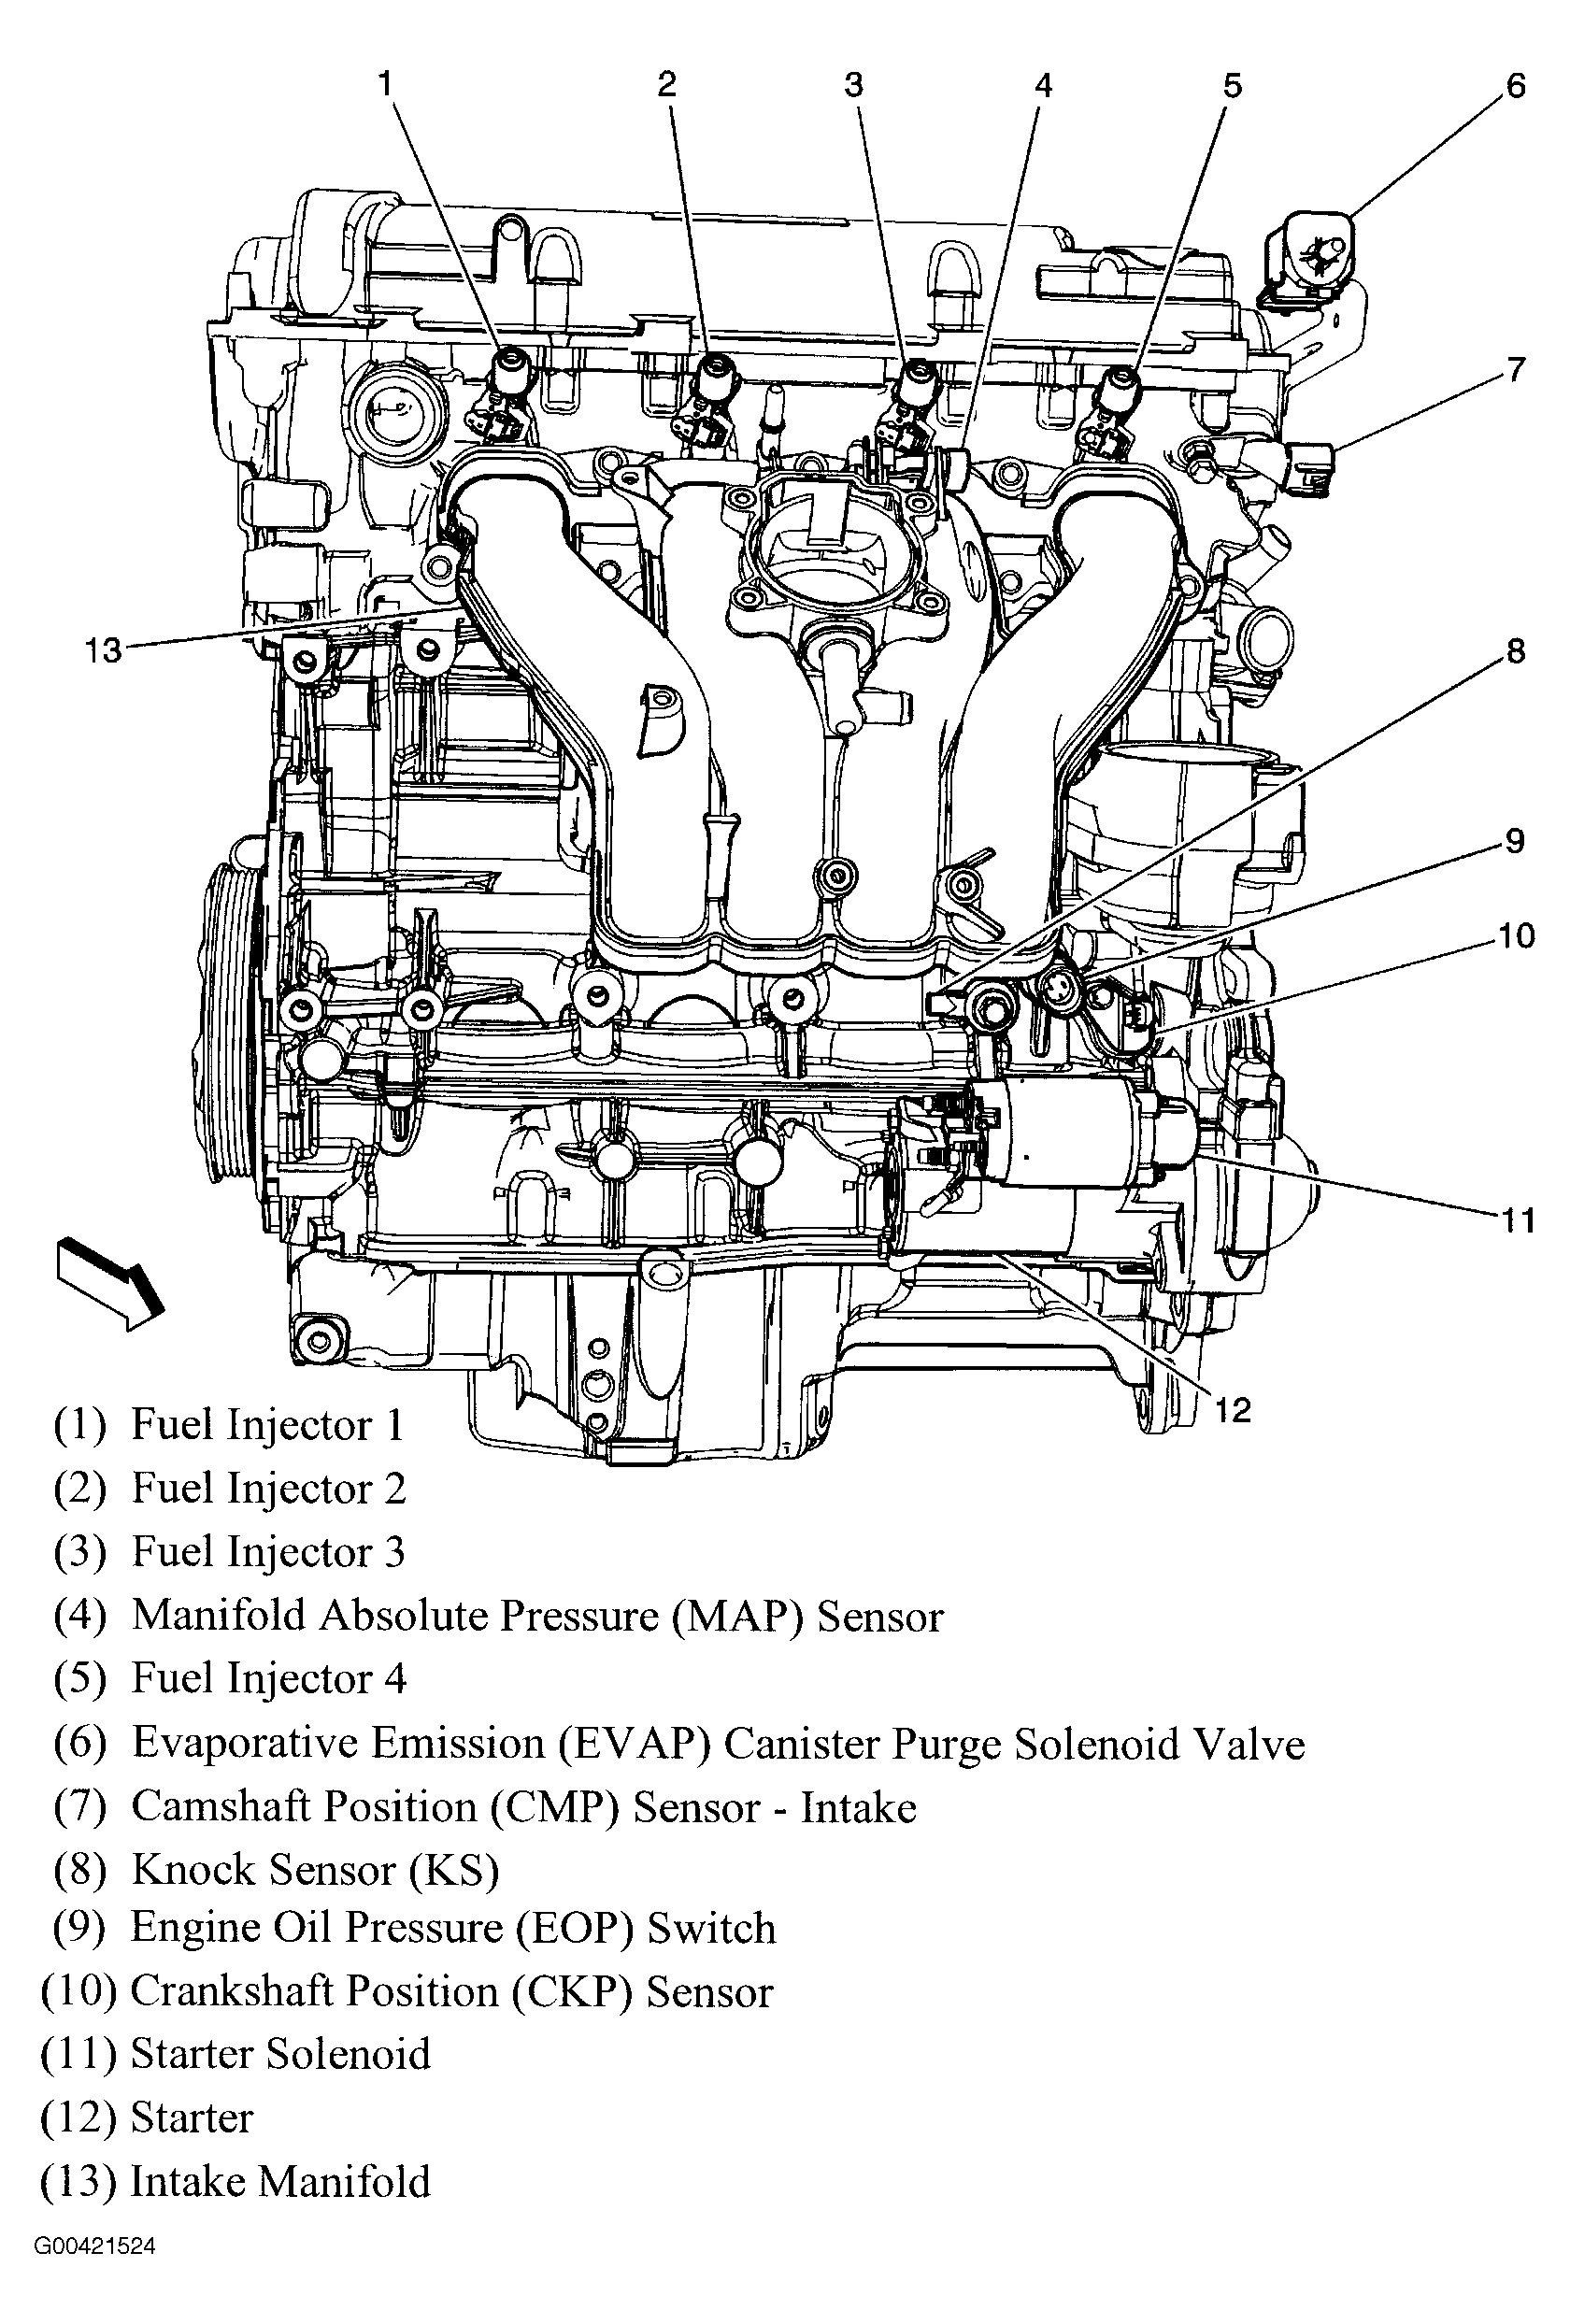 2003 Chevy Cavalier Engine Diagram Diagram as Well 98 ... on